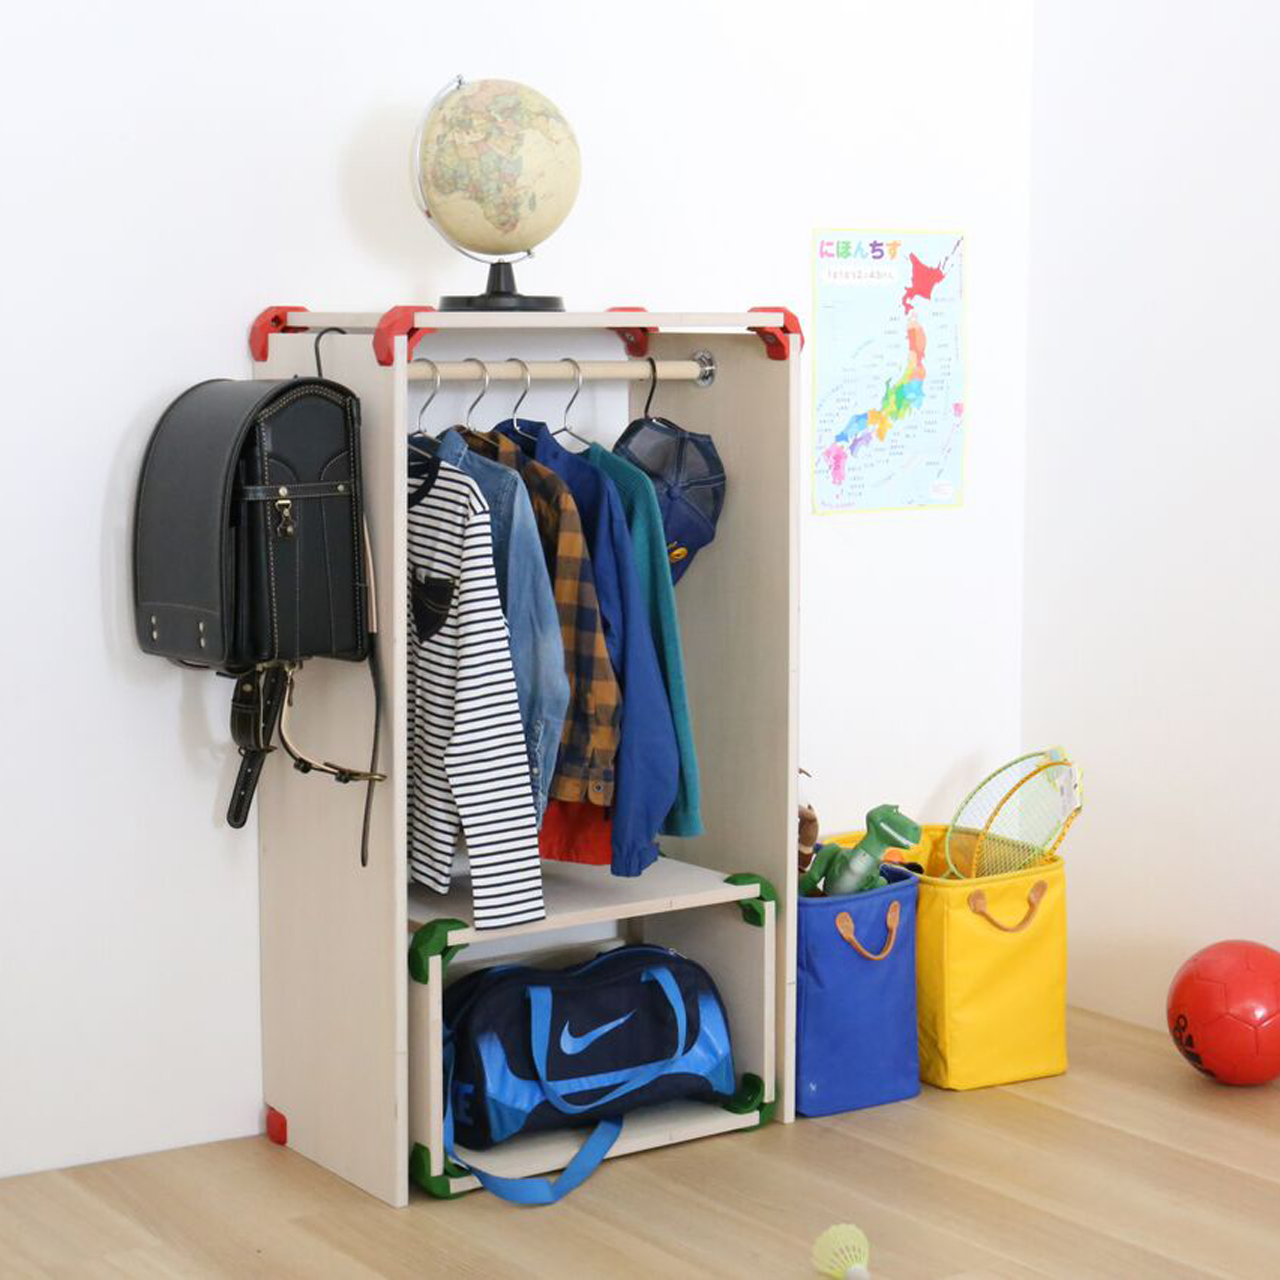 Playwood projects - Little wardrobe for little needs